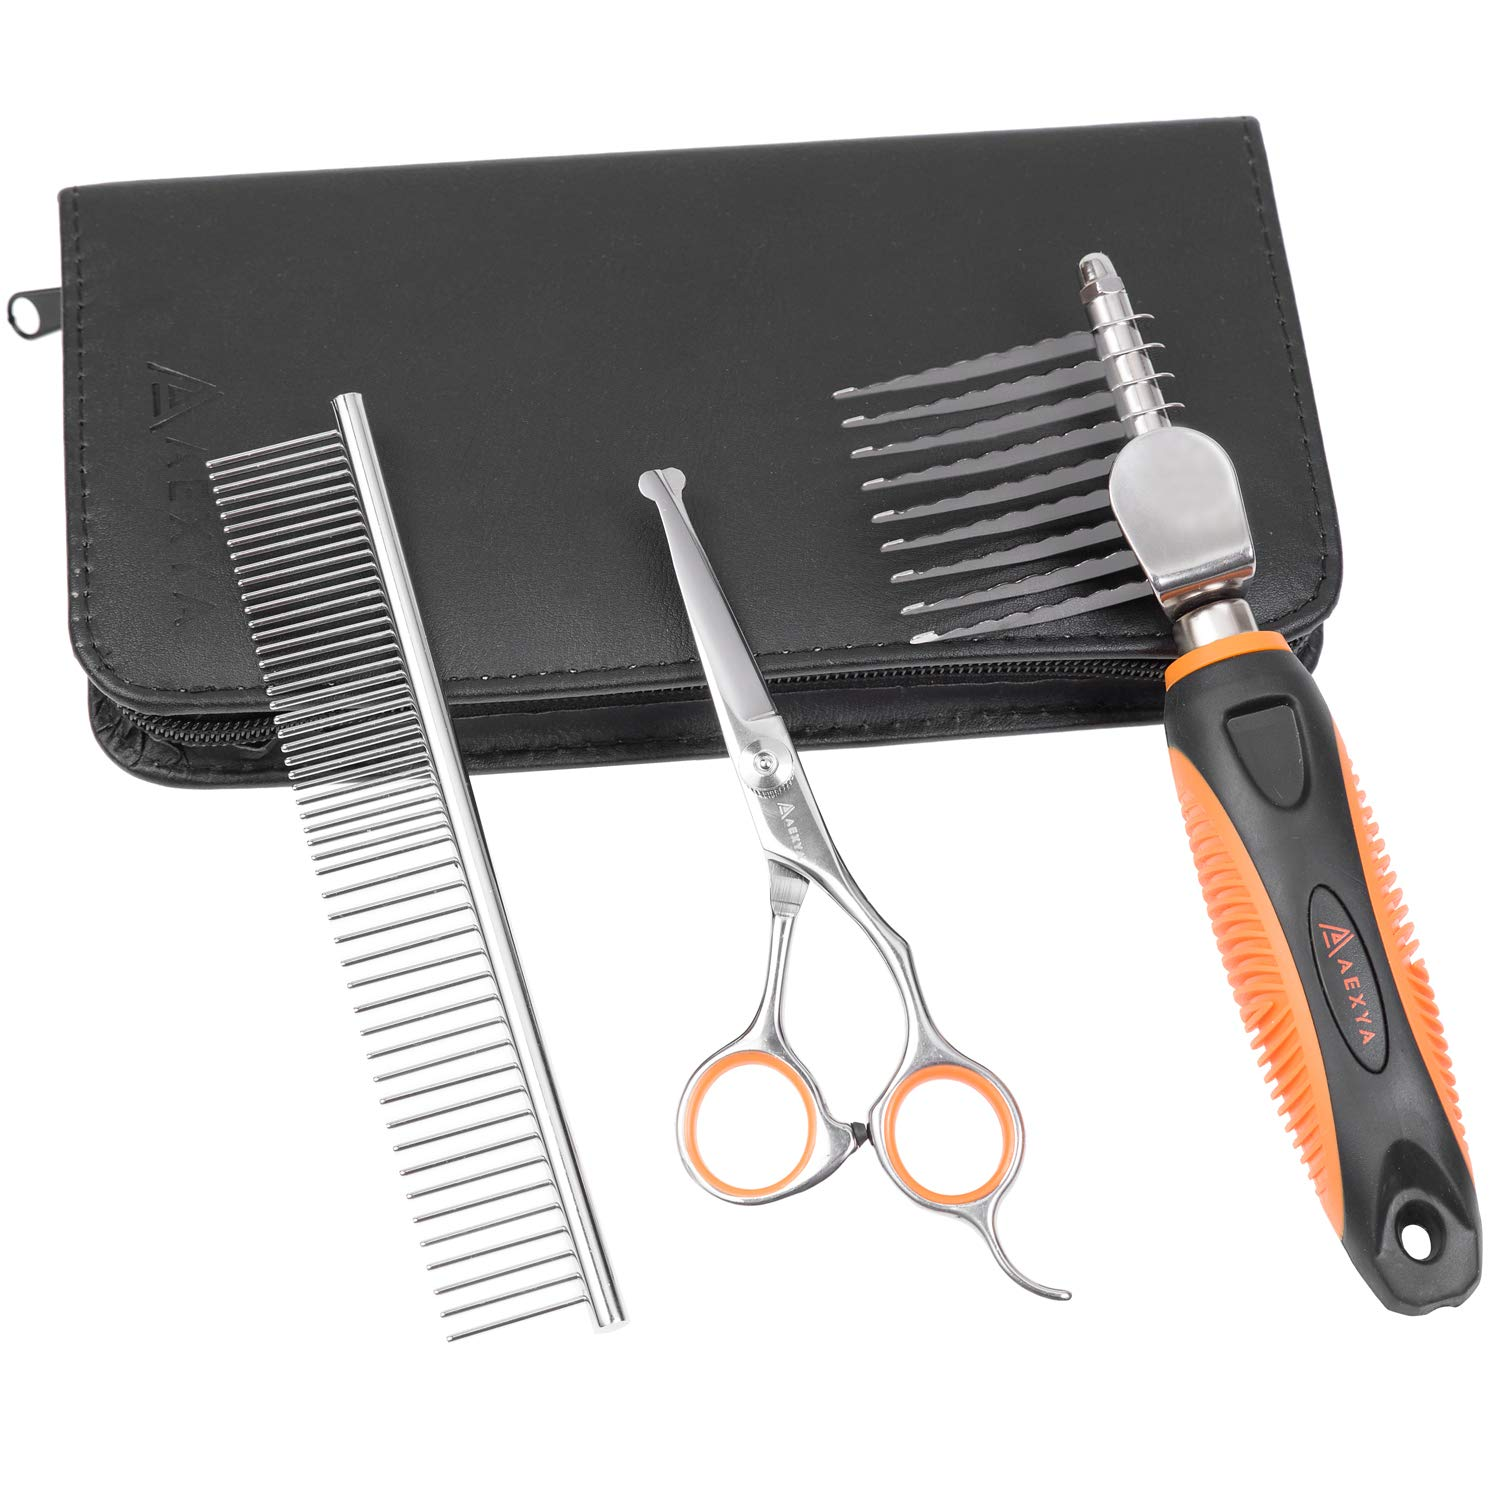 AEXYA - Premium Dog Dematting Tools Comb Scissors Set - Undercoat Tangles Deshedding Tool for Cats and Dogs – Safe and Easy Mats Remover Rake (Dematting)